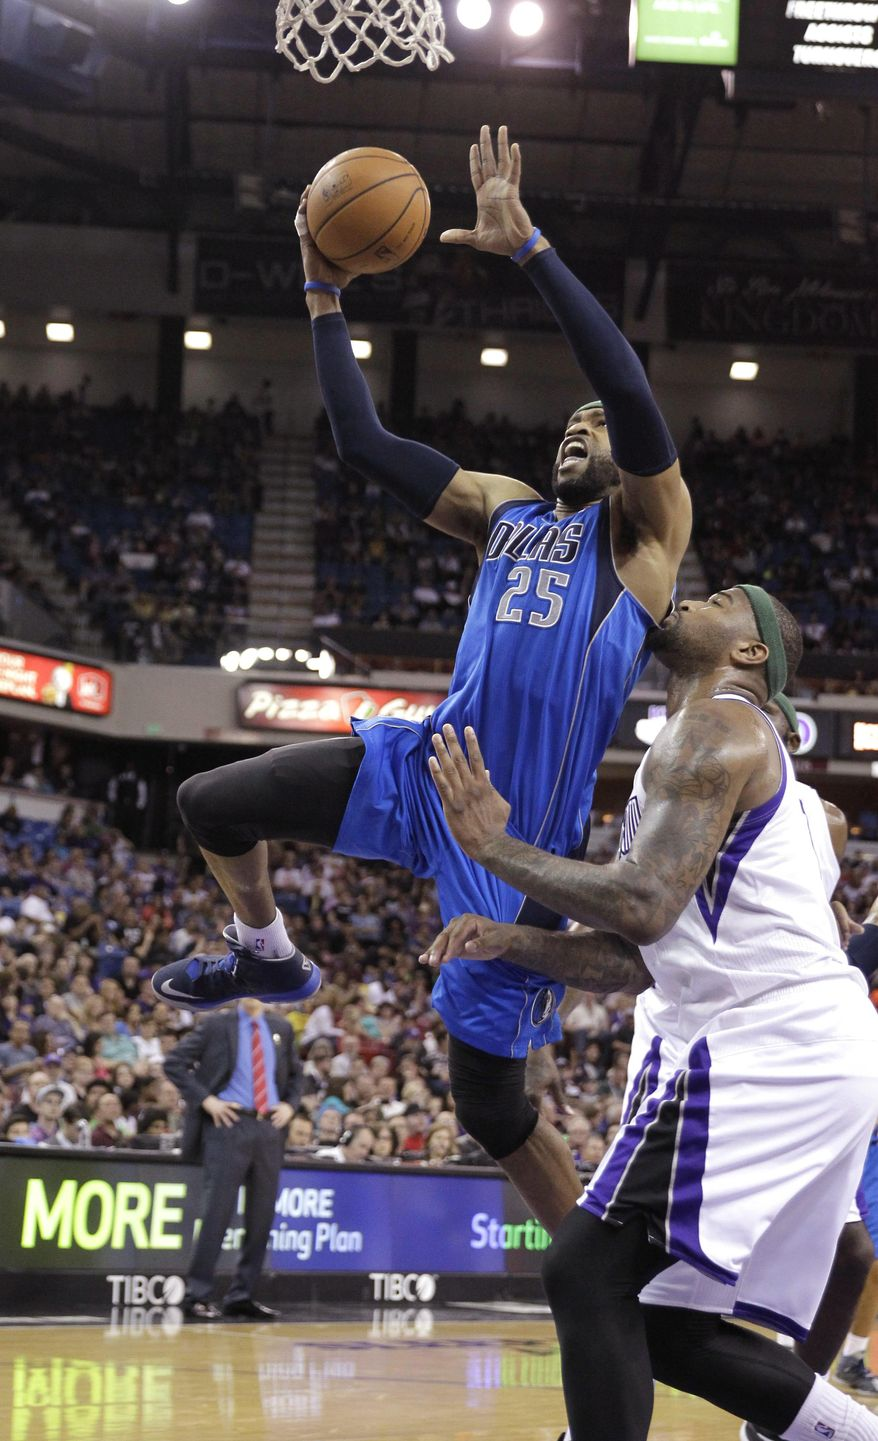 Dallas Mavericks guard Vince Carter, left, goes to the basket against Sacramento Kings center DeMarcus Cousins during the first quarter of an NBA basketball game, Sunday, April 6, 2014, in Sacramento, Calif.(AP Photo/Rich Pedroncelli)